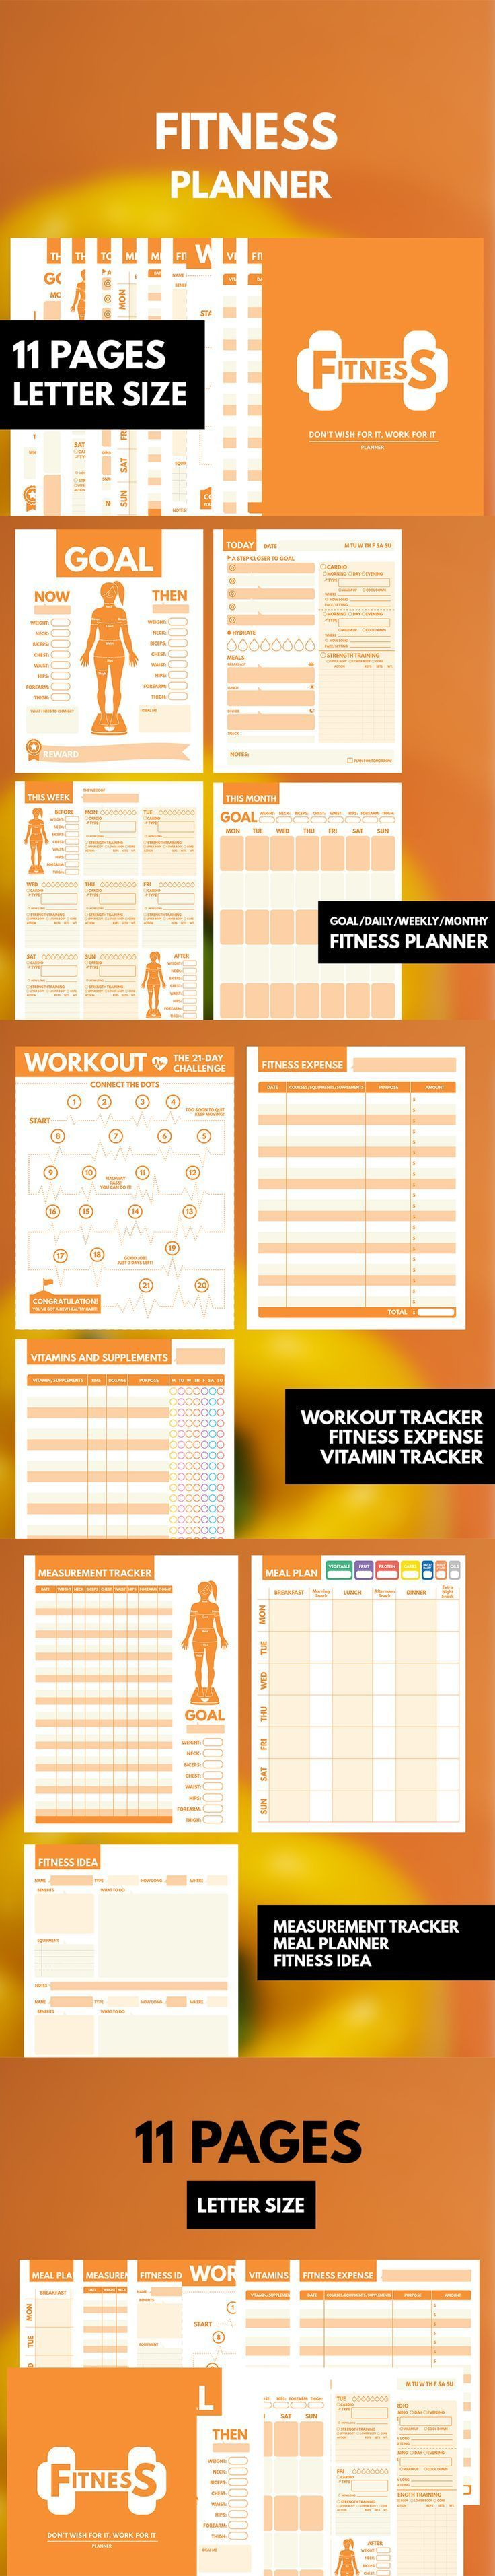 Newest Pics fitness planner printable Thoughts Are you ready to begin with with printable planner in...